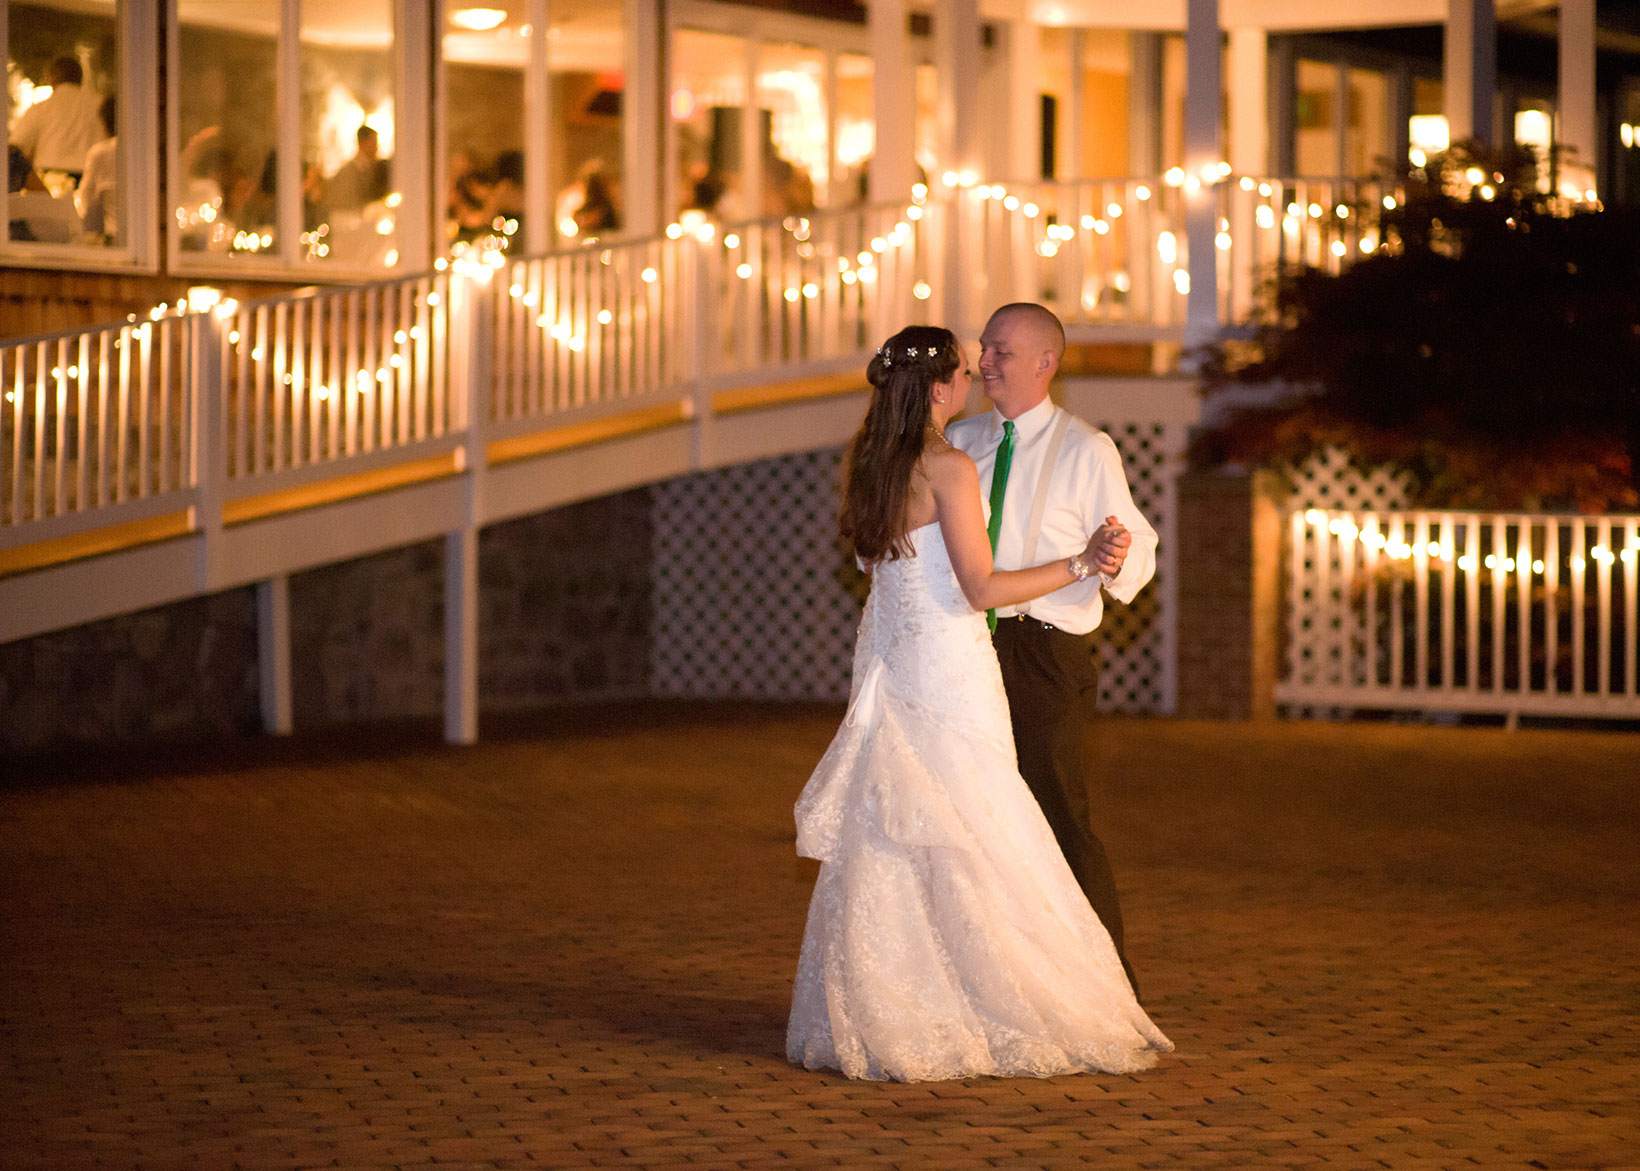 st louis weddings special events outdoor lighting perspectives of st louis